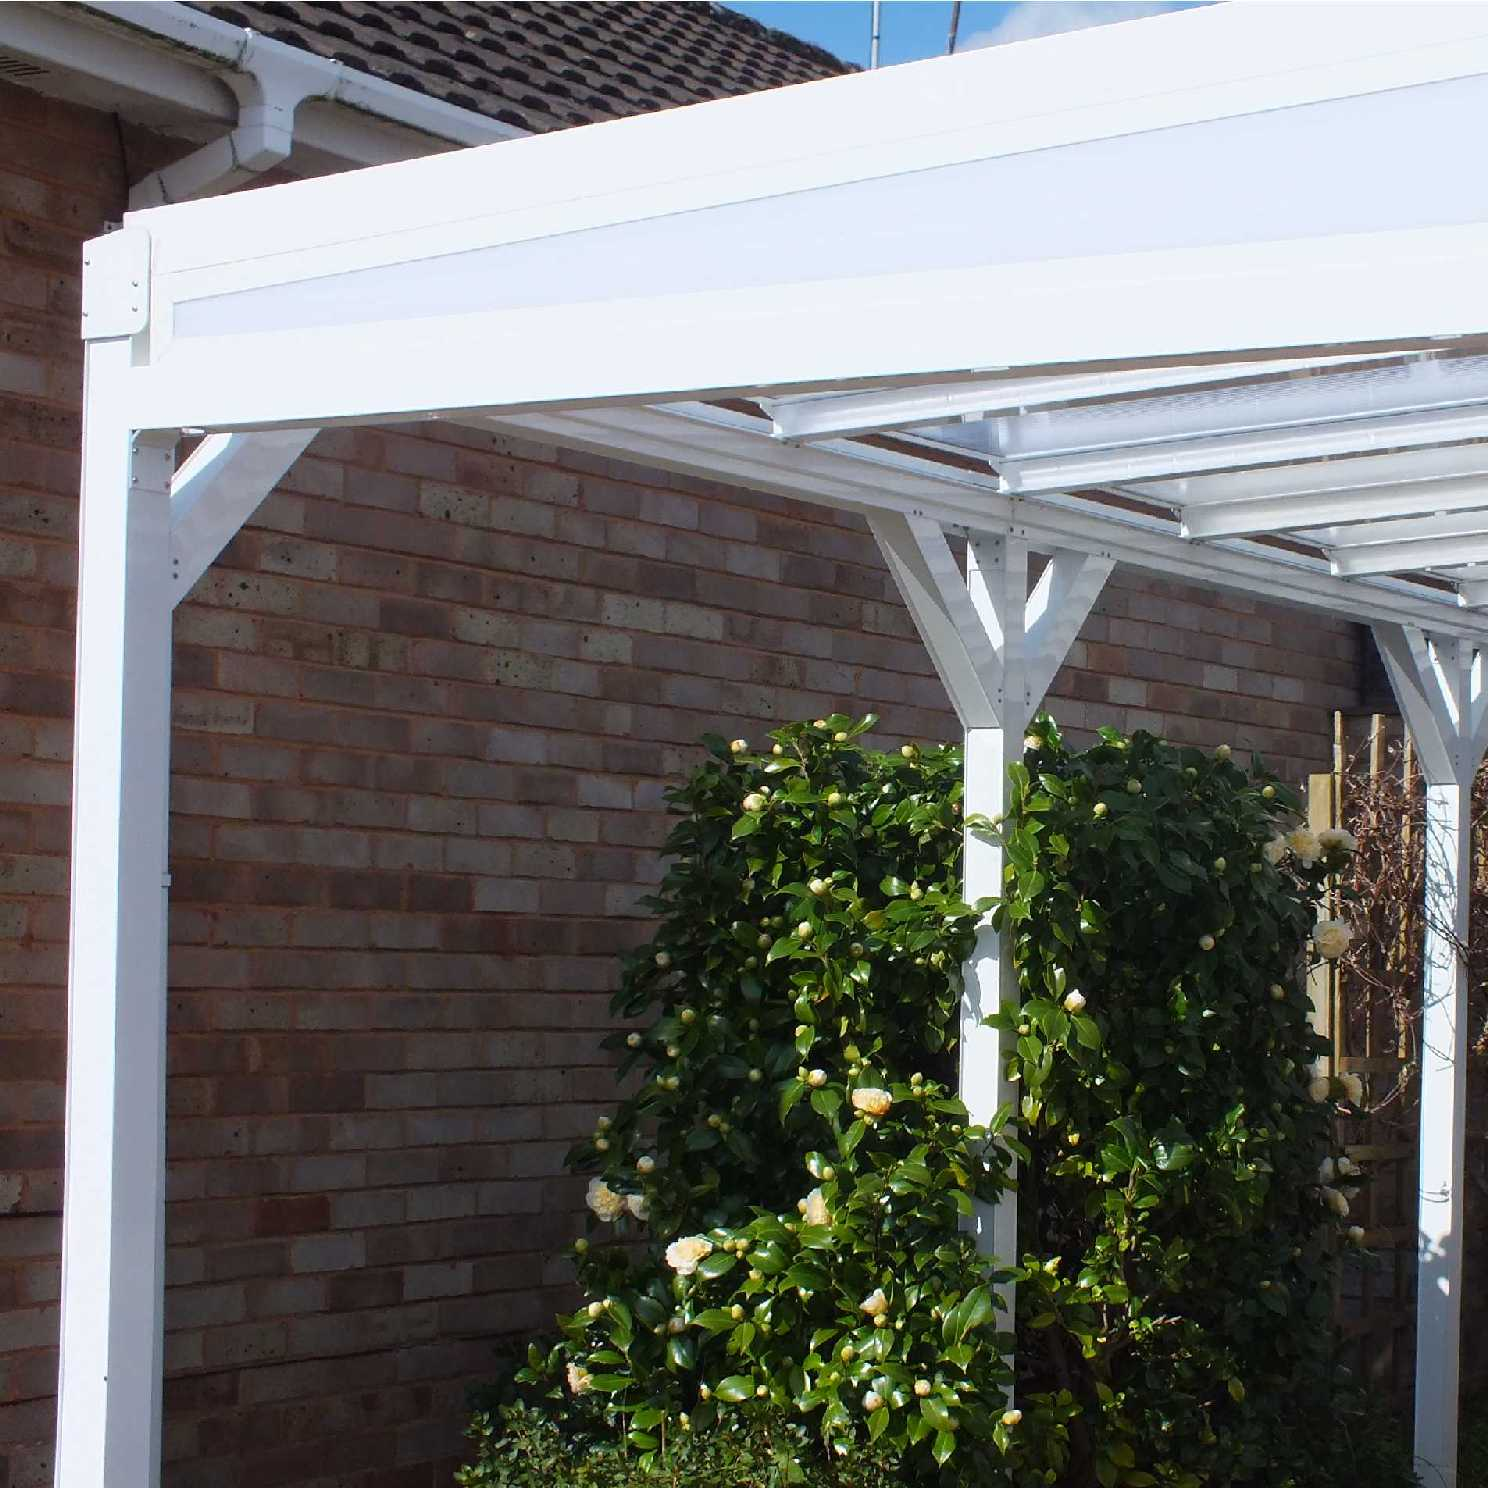 Omega Smart White Lean-To Canopy with 16mm Polycarbonate Glazing - 6.3m (W) x 4.0m (P), (4) Supporting Posts from Omega Build